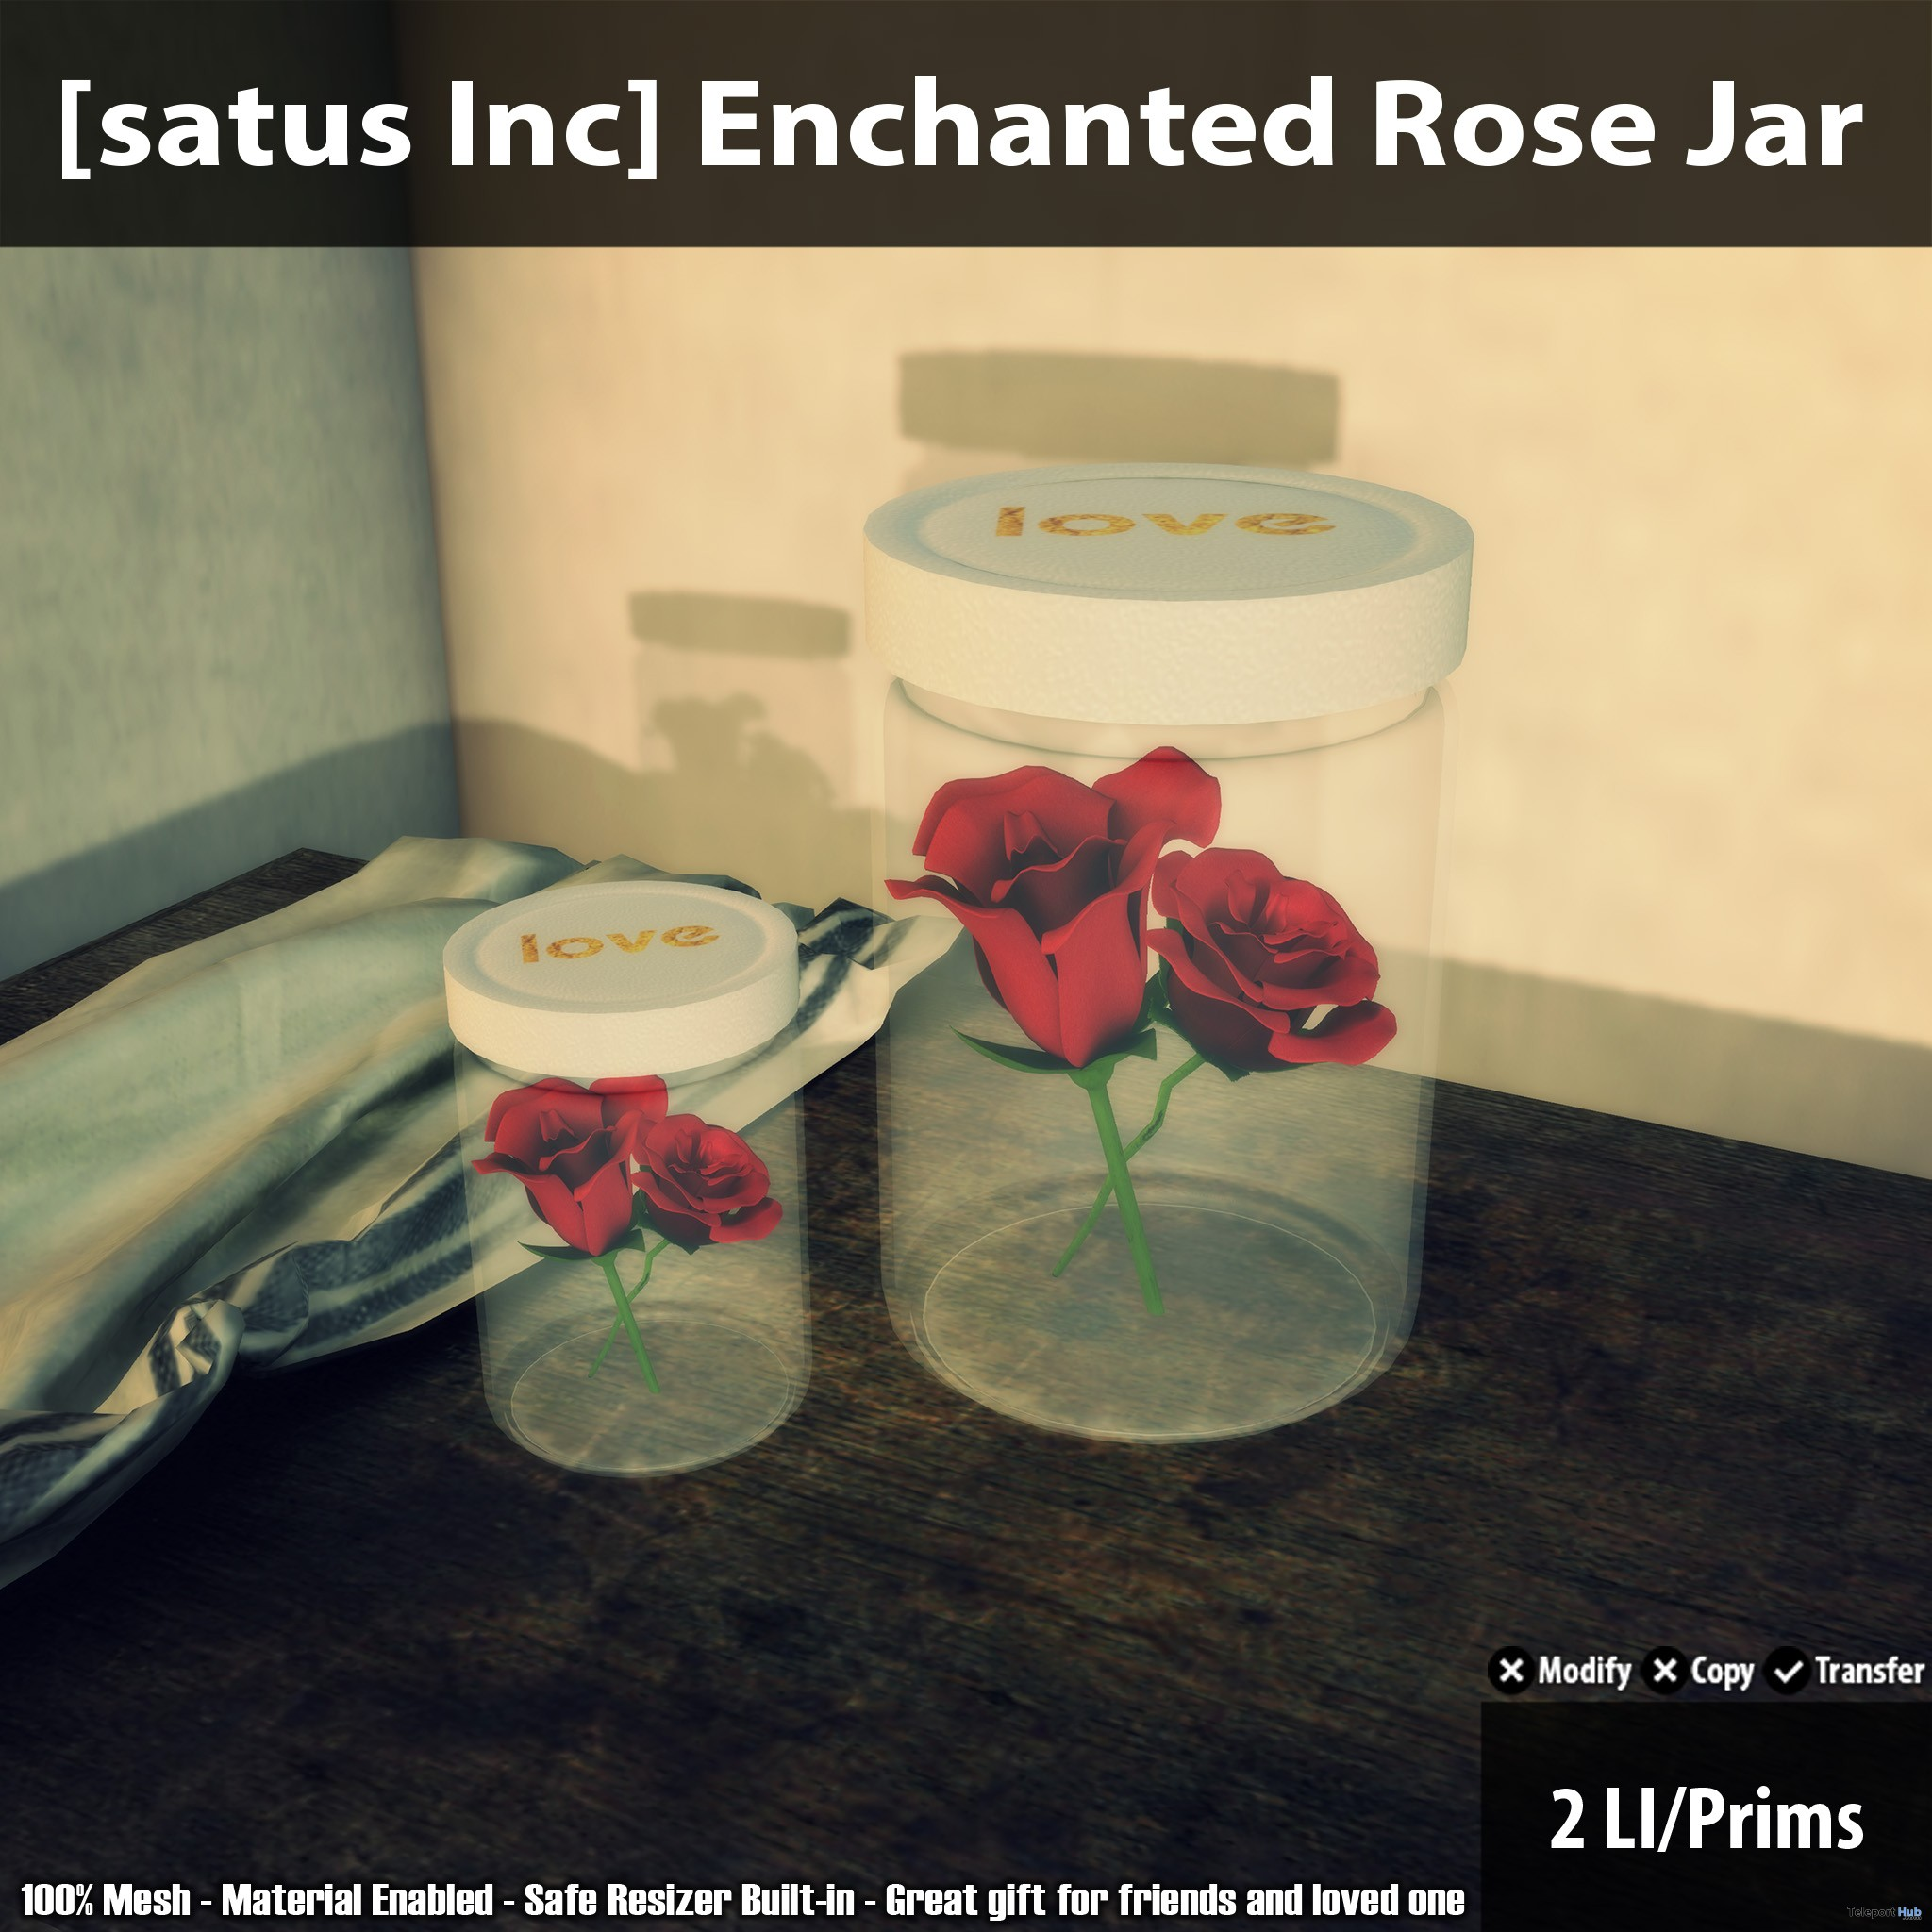 New Release Enchanted Rose Jar By Satus Inc Teleport